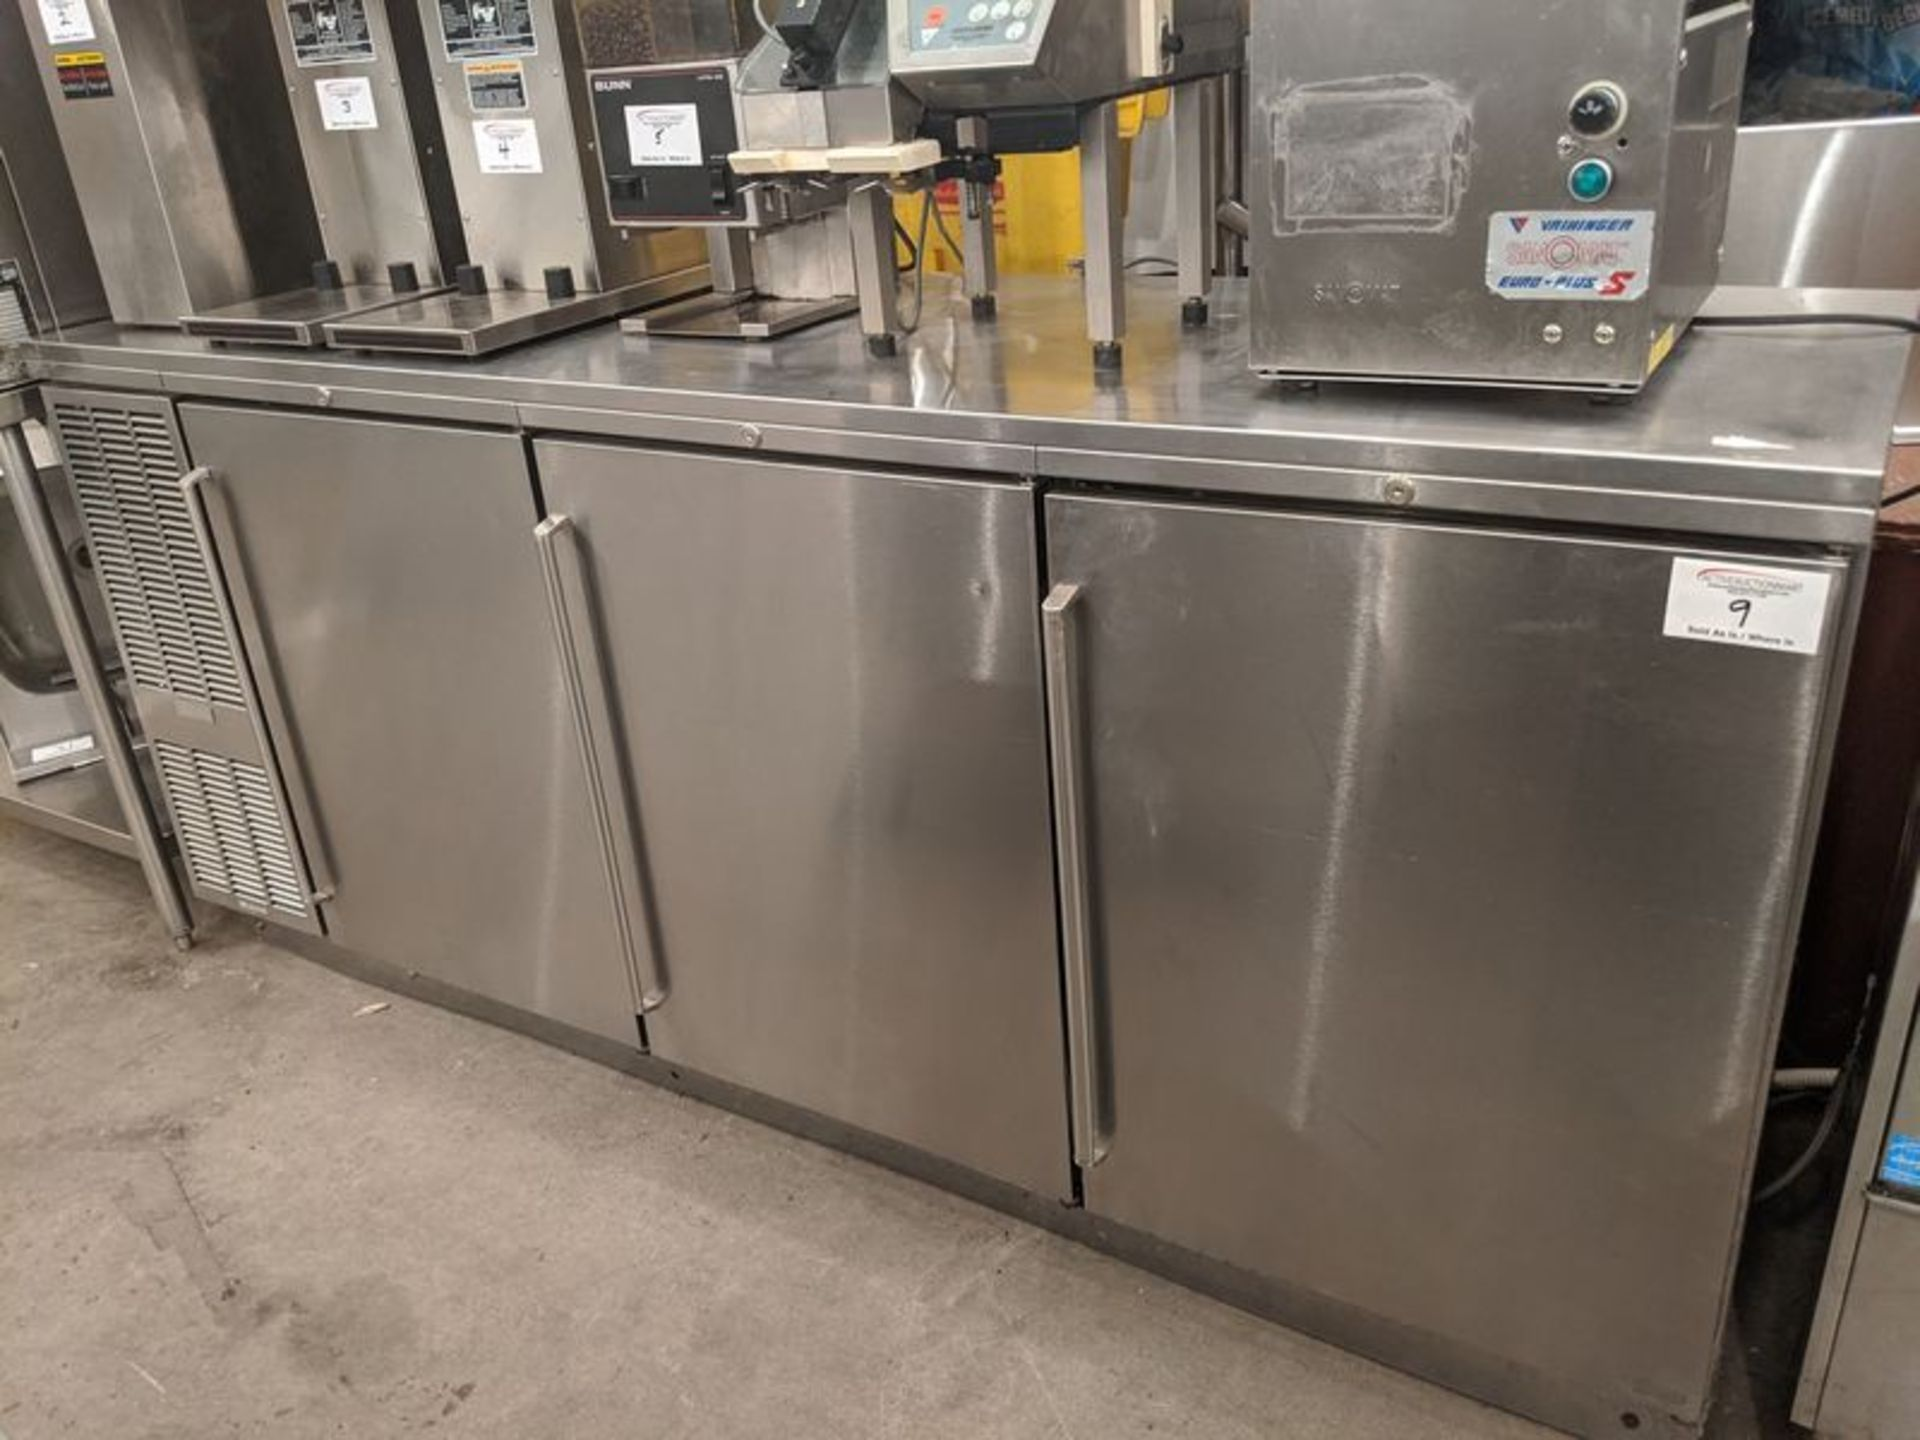 Lot 9 - Perlick 7ft Self Contained Back Bar